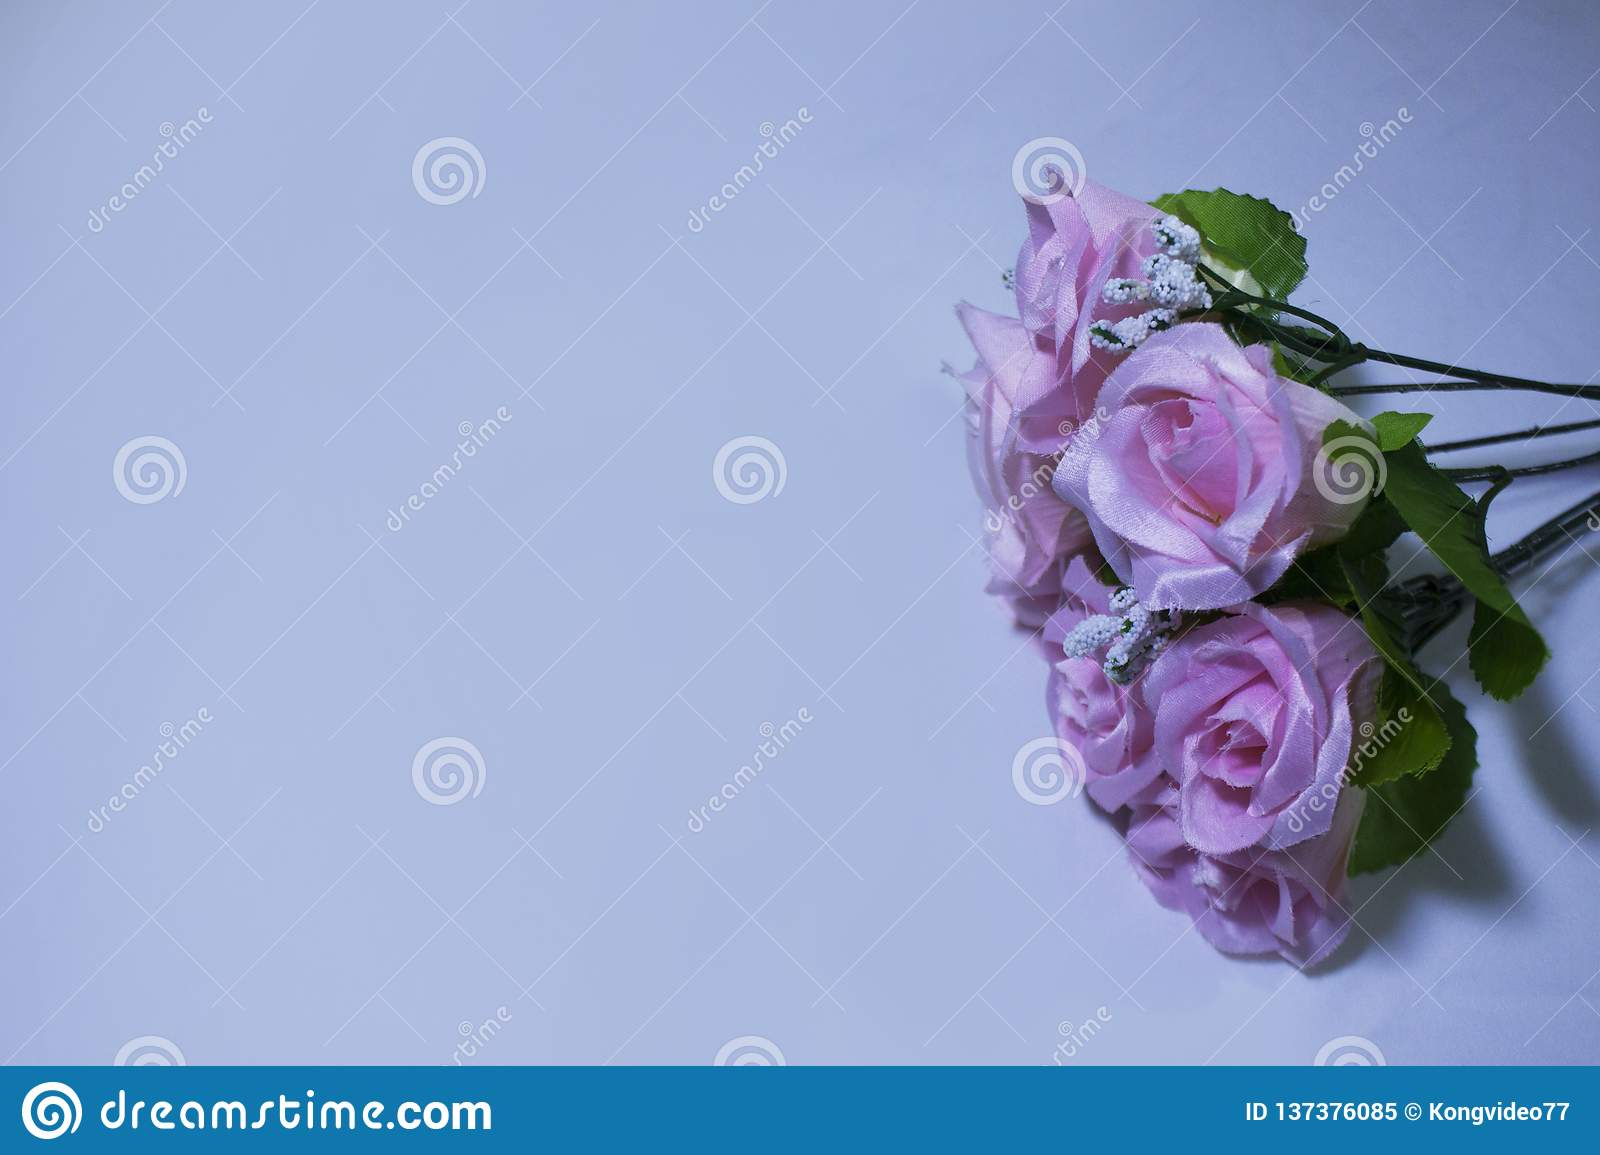 Pink Flower On White Background Photoshoot Valentine Day Stock Image Image Of Greeting Green 137376085